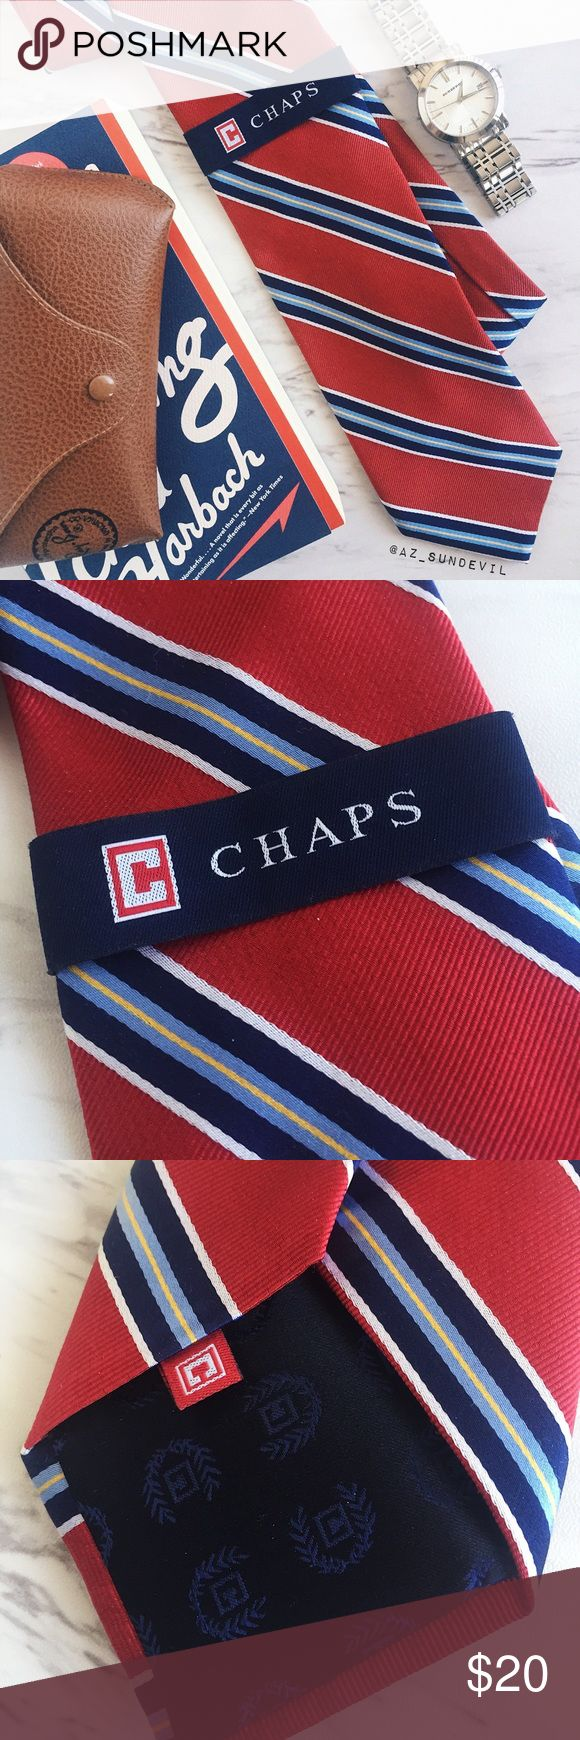 Chap's 100% Silk Striped Tie Chap's | 100% silk striped tie in red/blue. New with tags. Chaps Accessories Ties